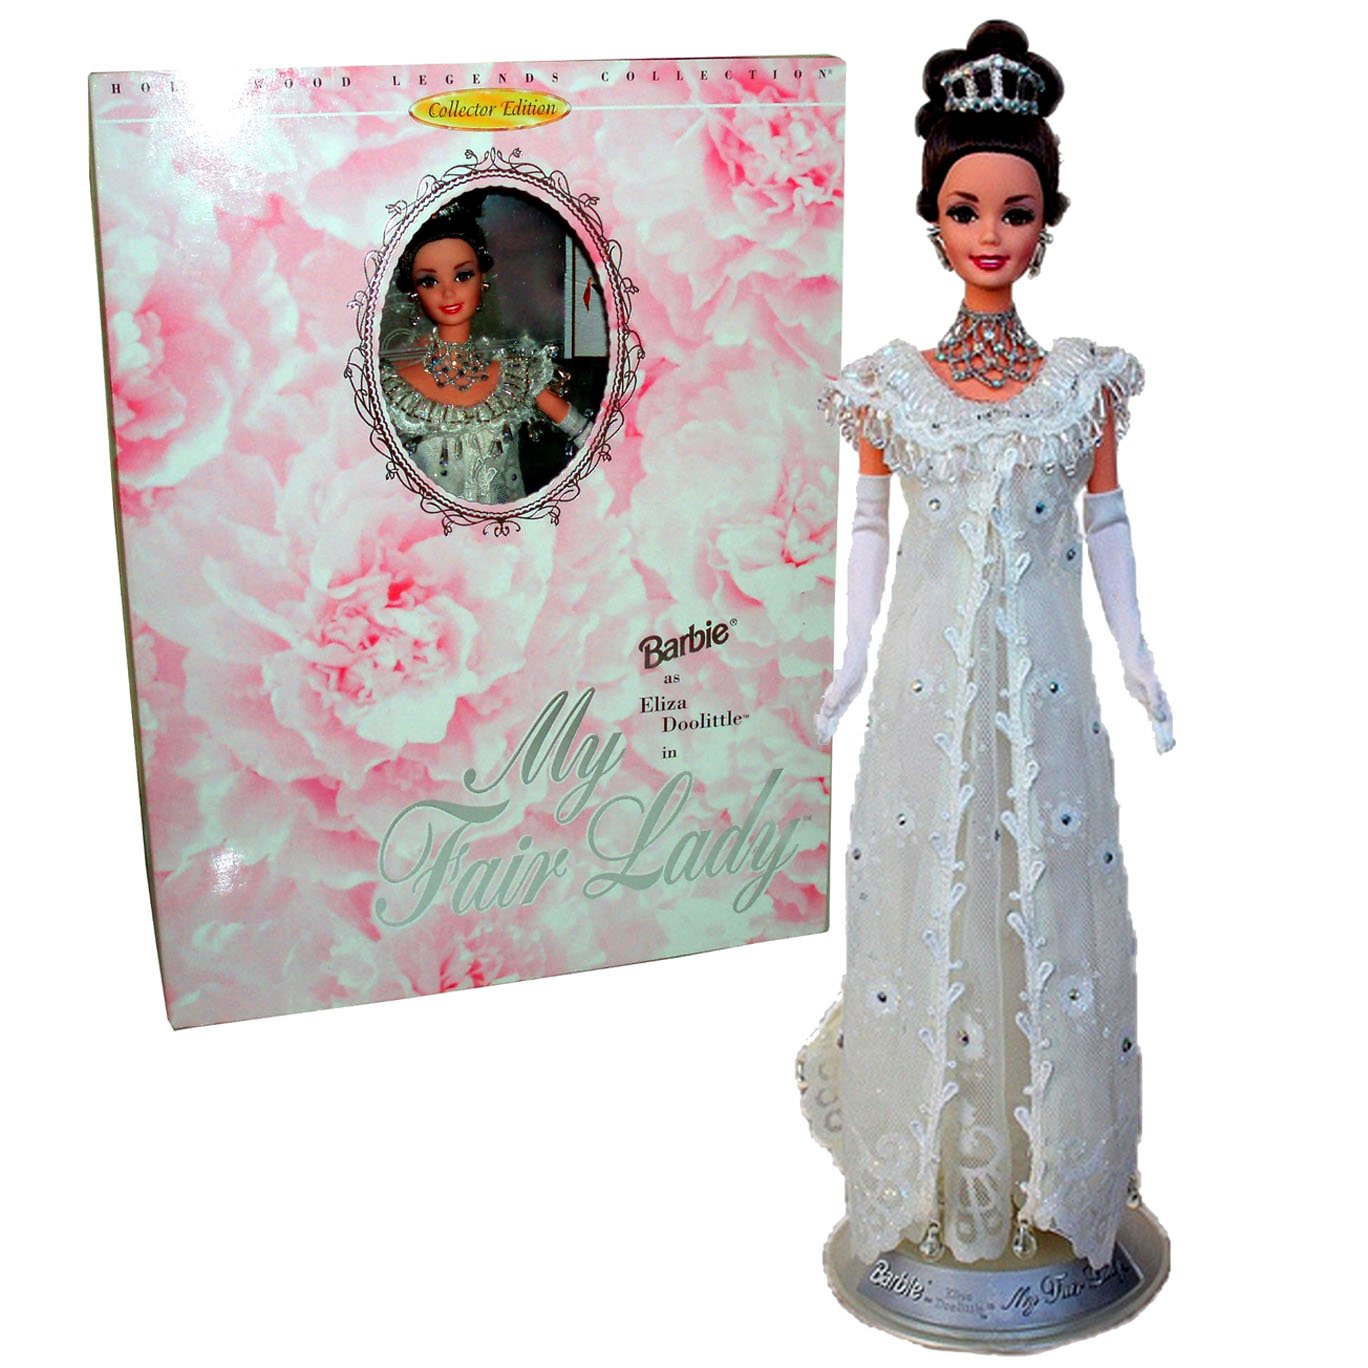 Amazon.com: Mattel Year 1995 Barbie Collector Edition Hollywood ...